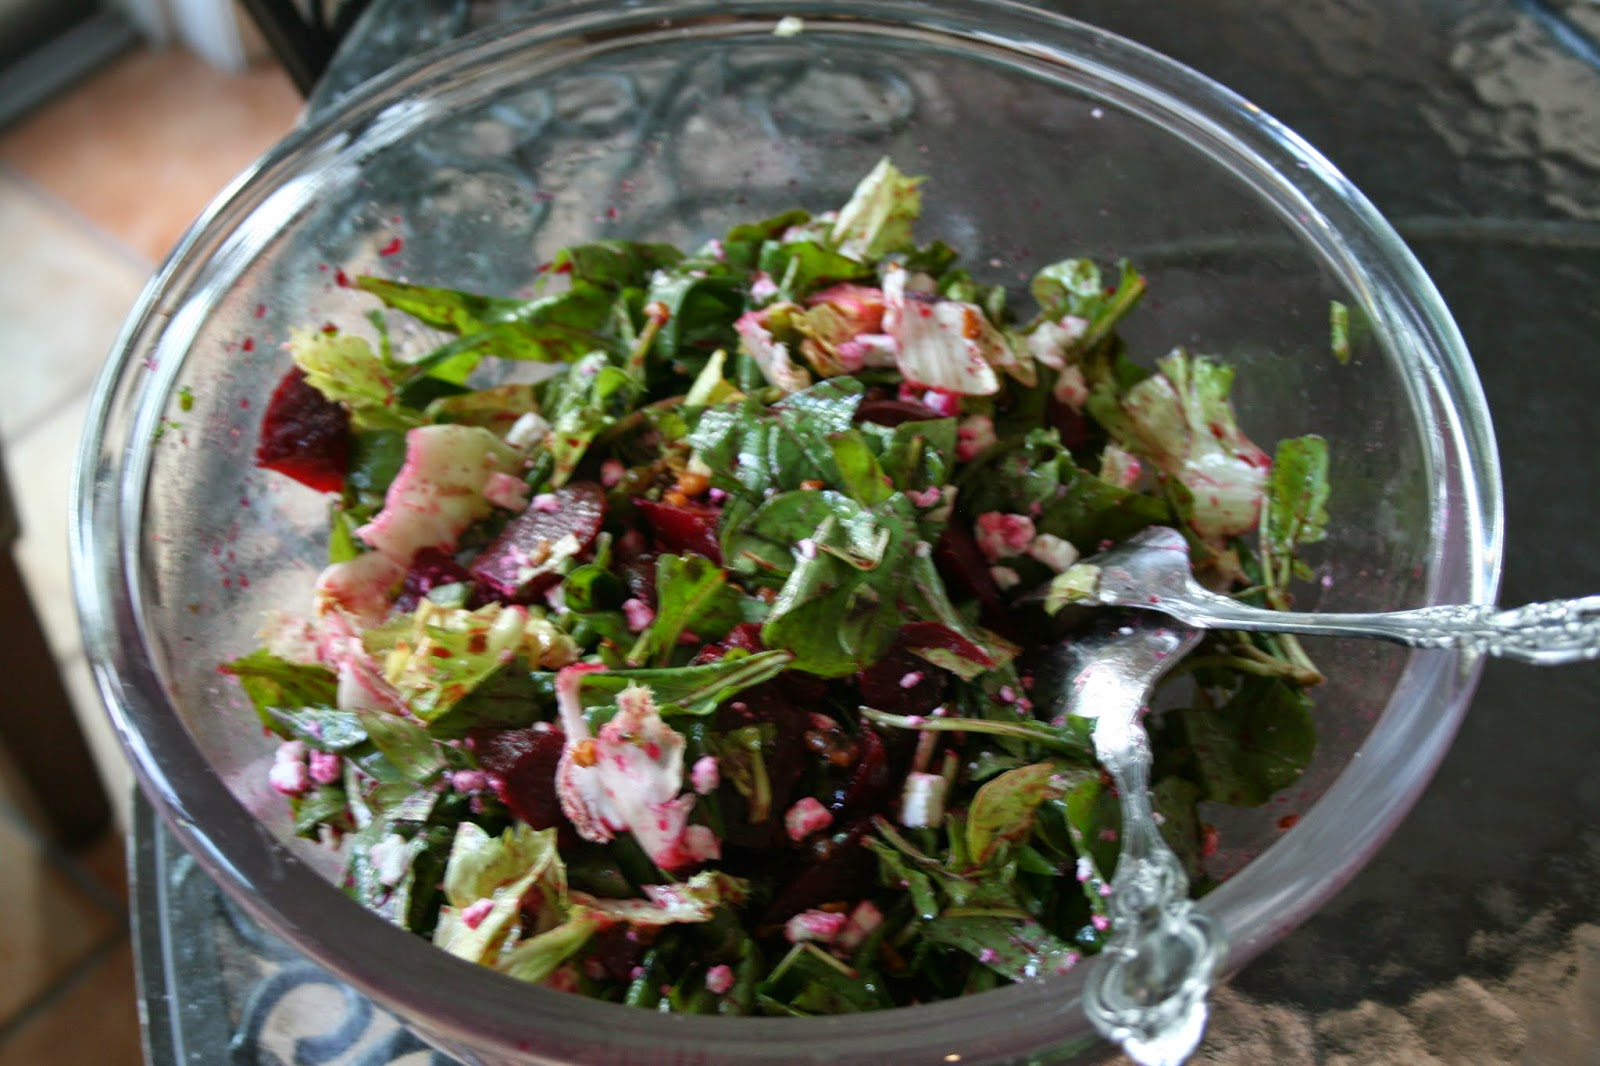 Julia's Cookbook: Arugula Salad with Beets, Walnuts and Goat Cheese